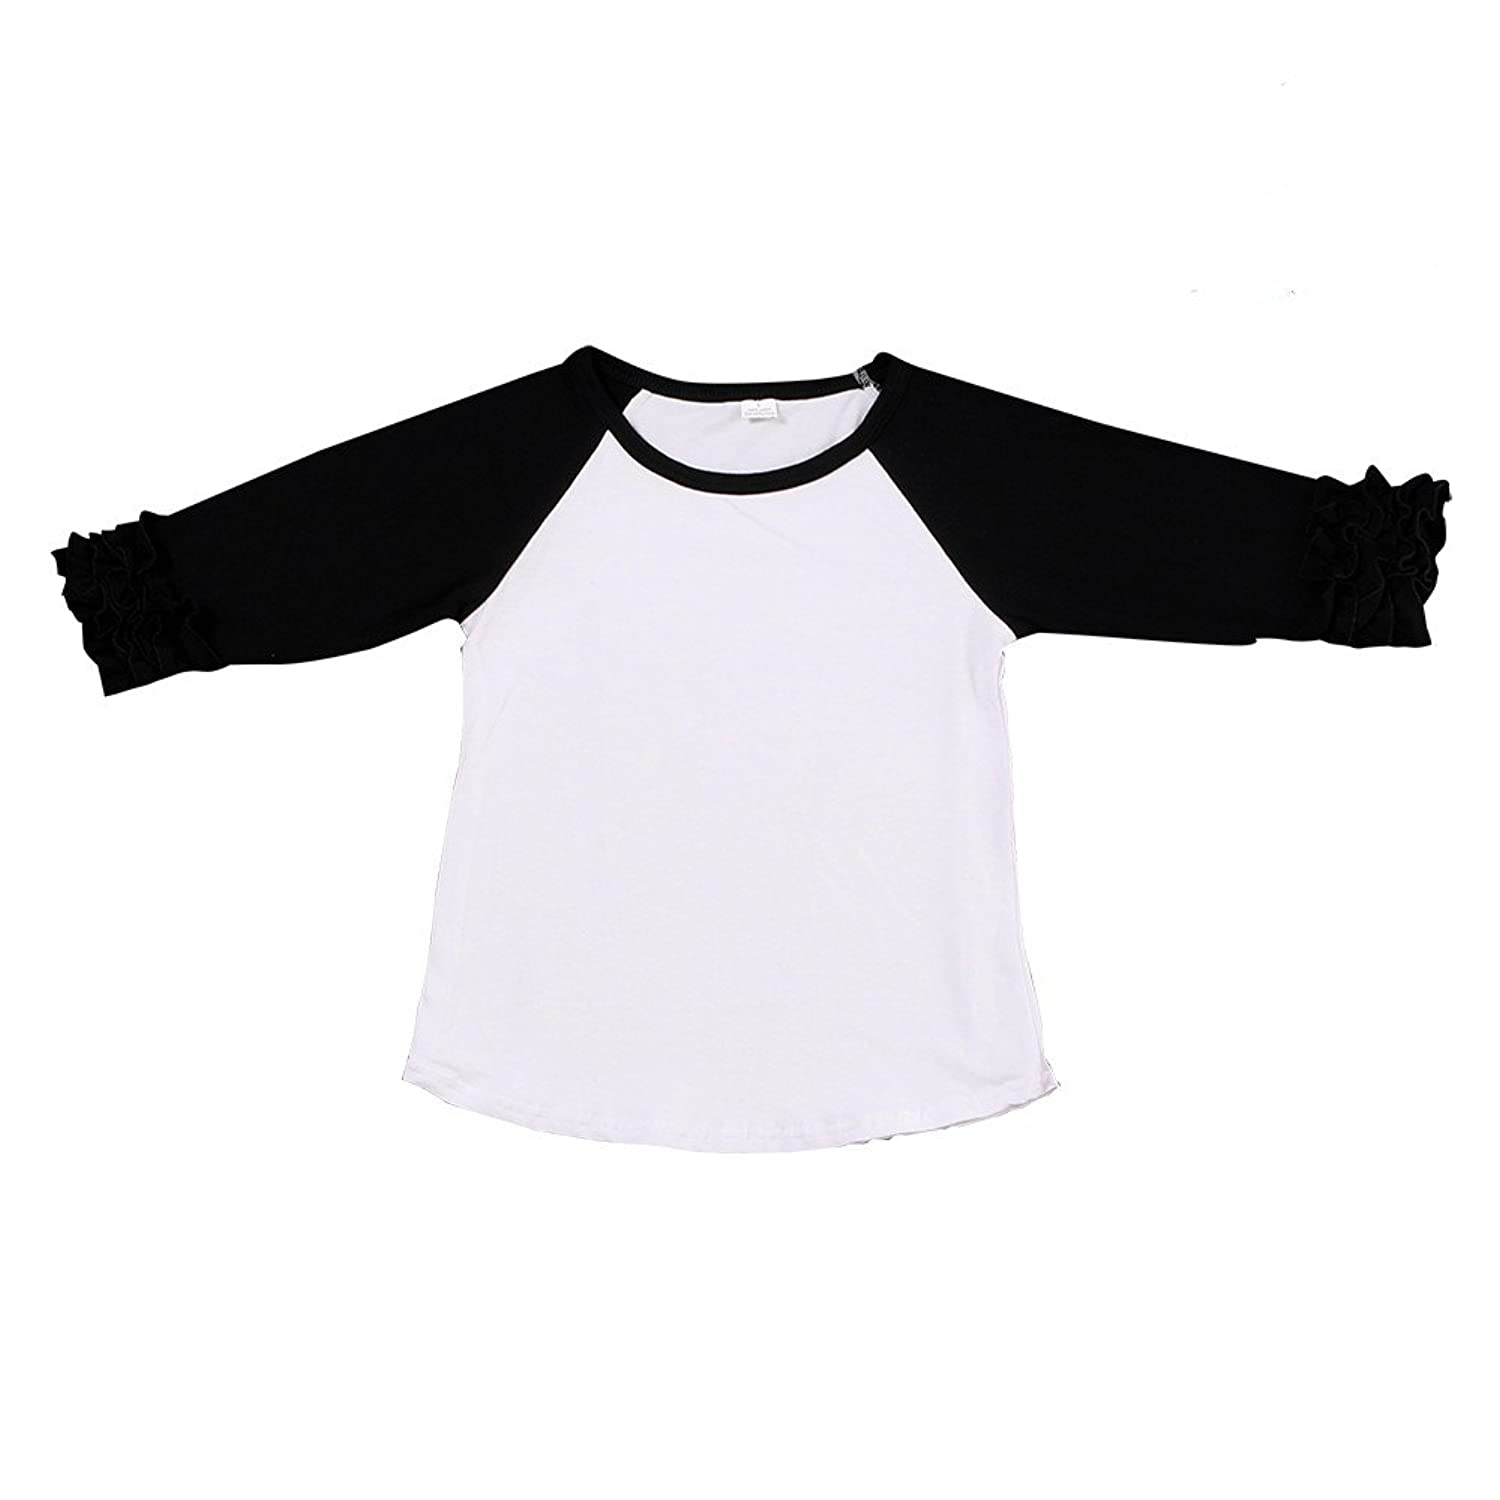 Childrens Blank Shirts For Embroidery Rldm